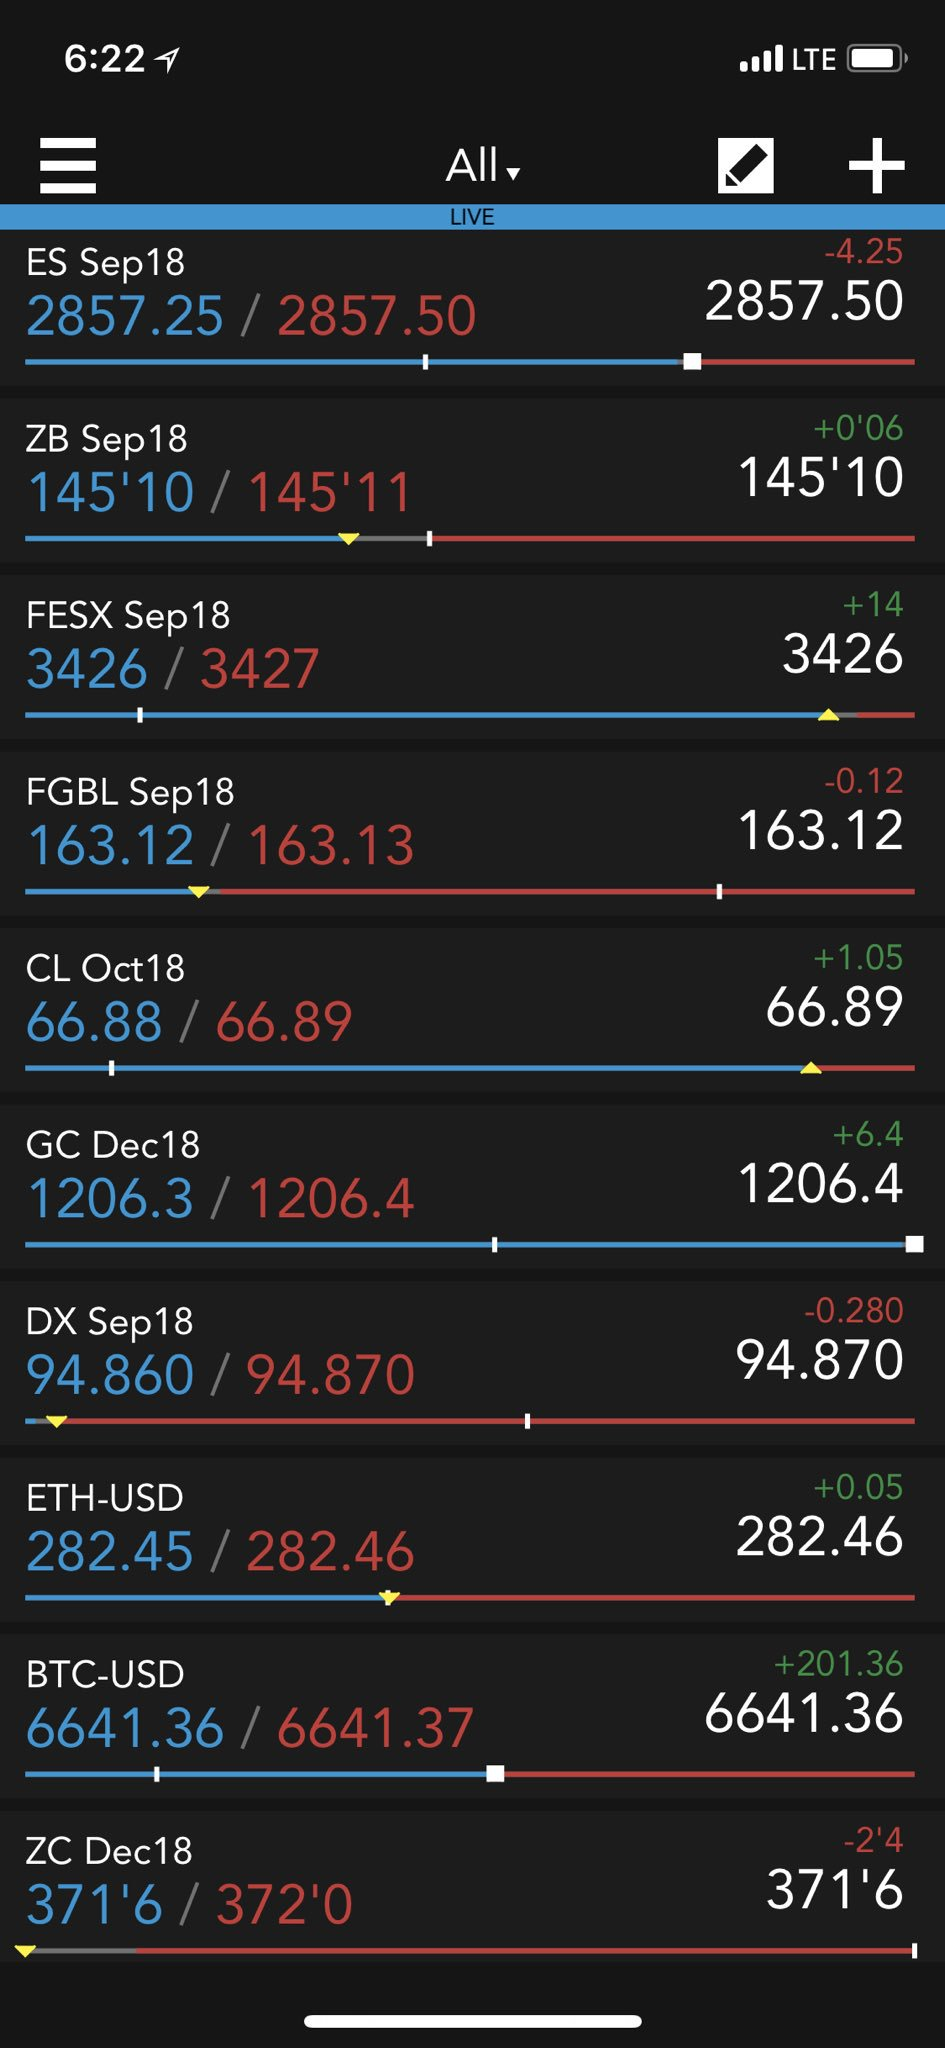 Market view on TT: #ES_F and #bunds are down. #ZB_F, #FESX, #CAC40 and #HangSeng are higher. #Crude, #gold and #aluminium are higher. #DX_F and #corn are lower. #Bitcoin and #ethereum are up. https://t.co/N5YqEBrgMM